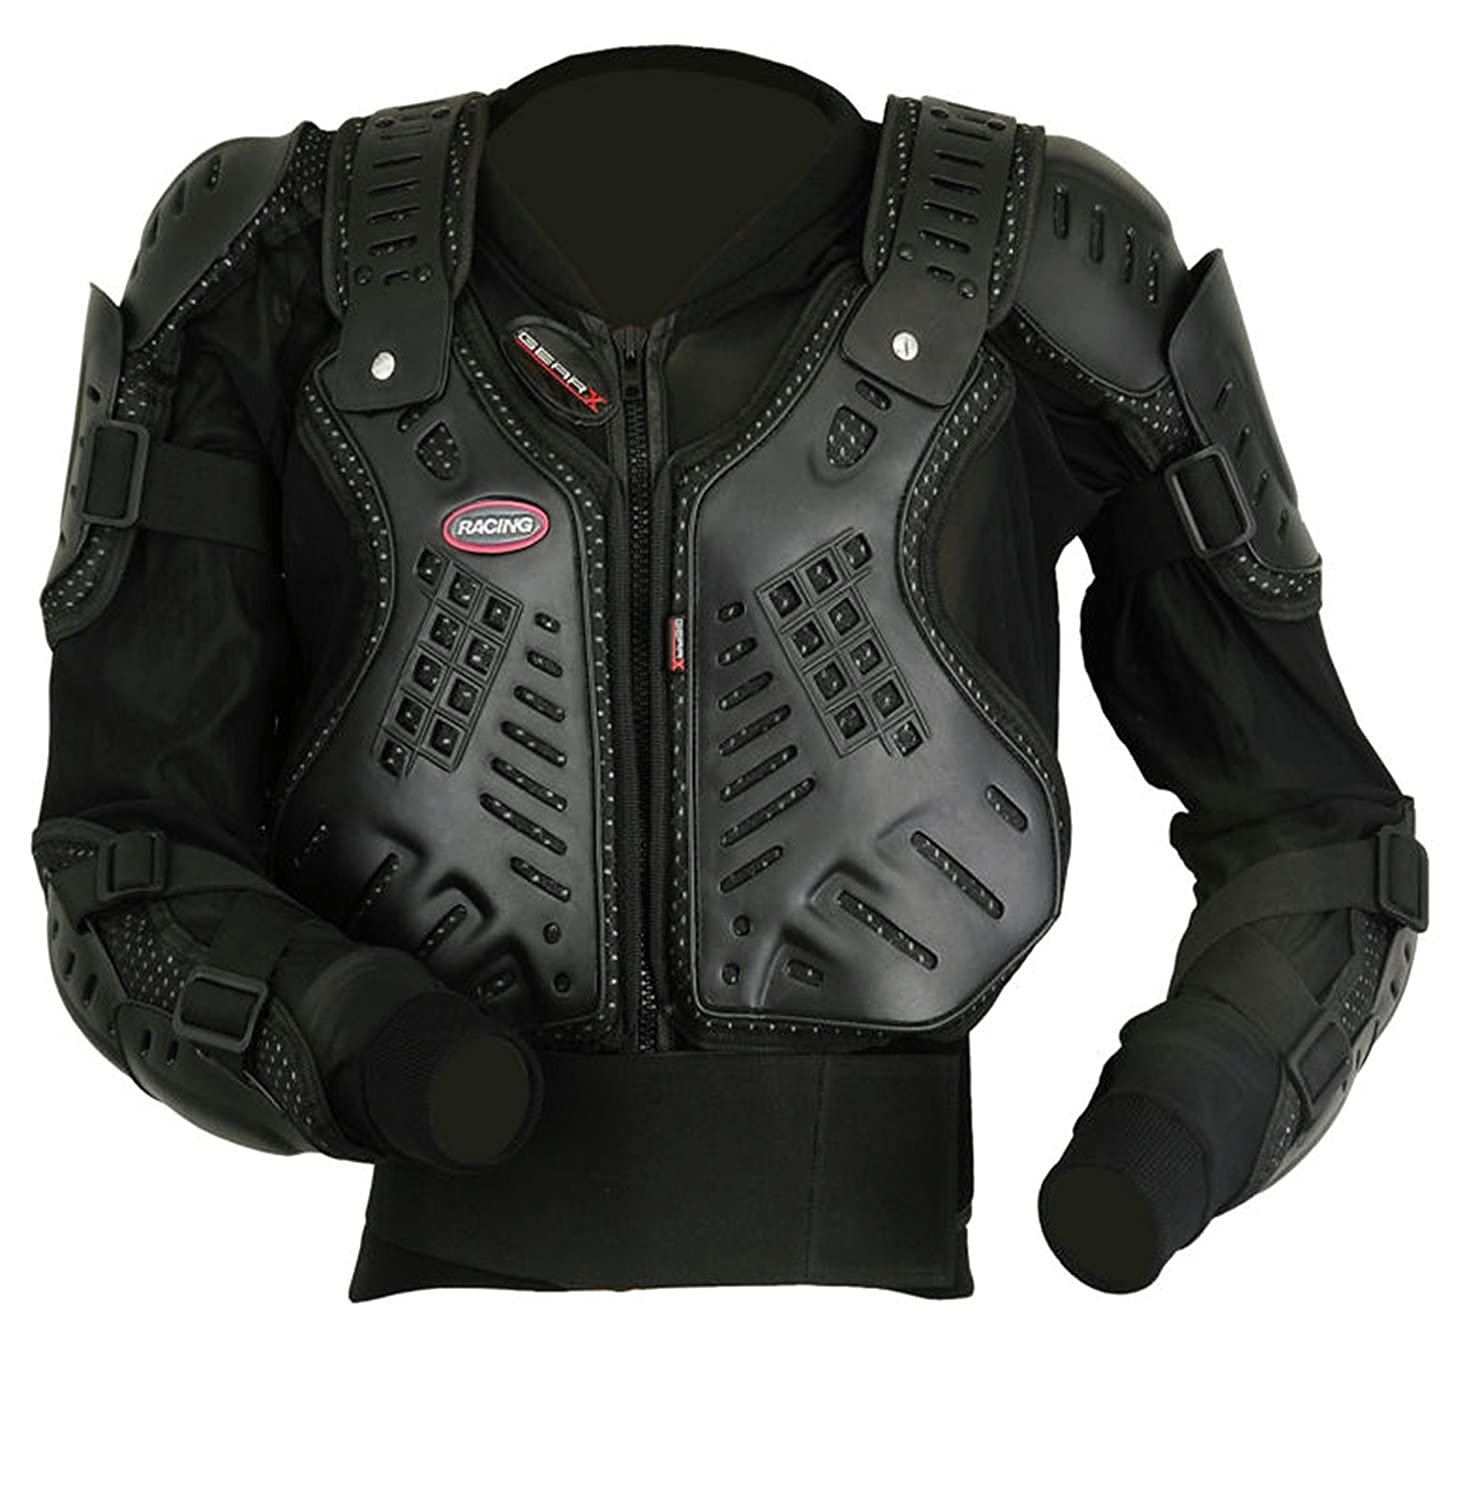 Body blindé Veste de protection Moto cross Patinage Snowbaords Ski GearX